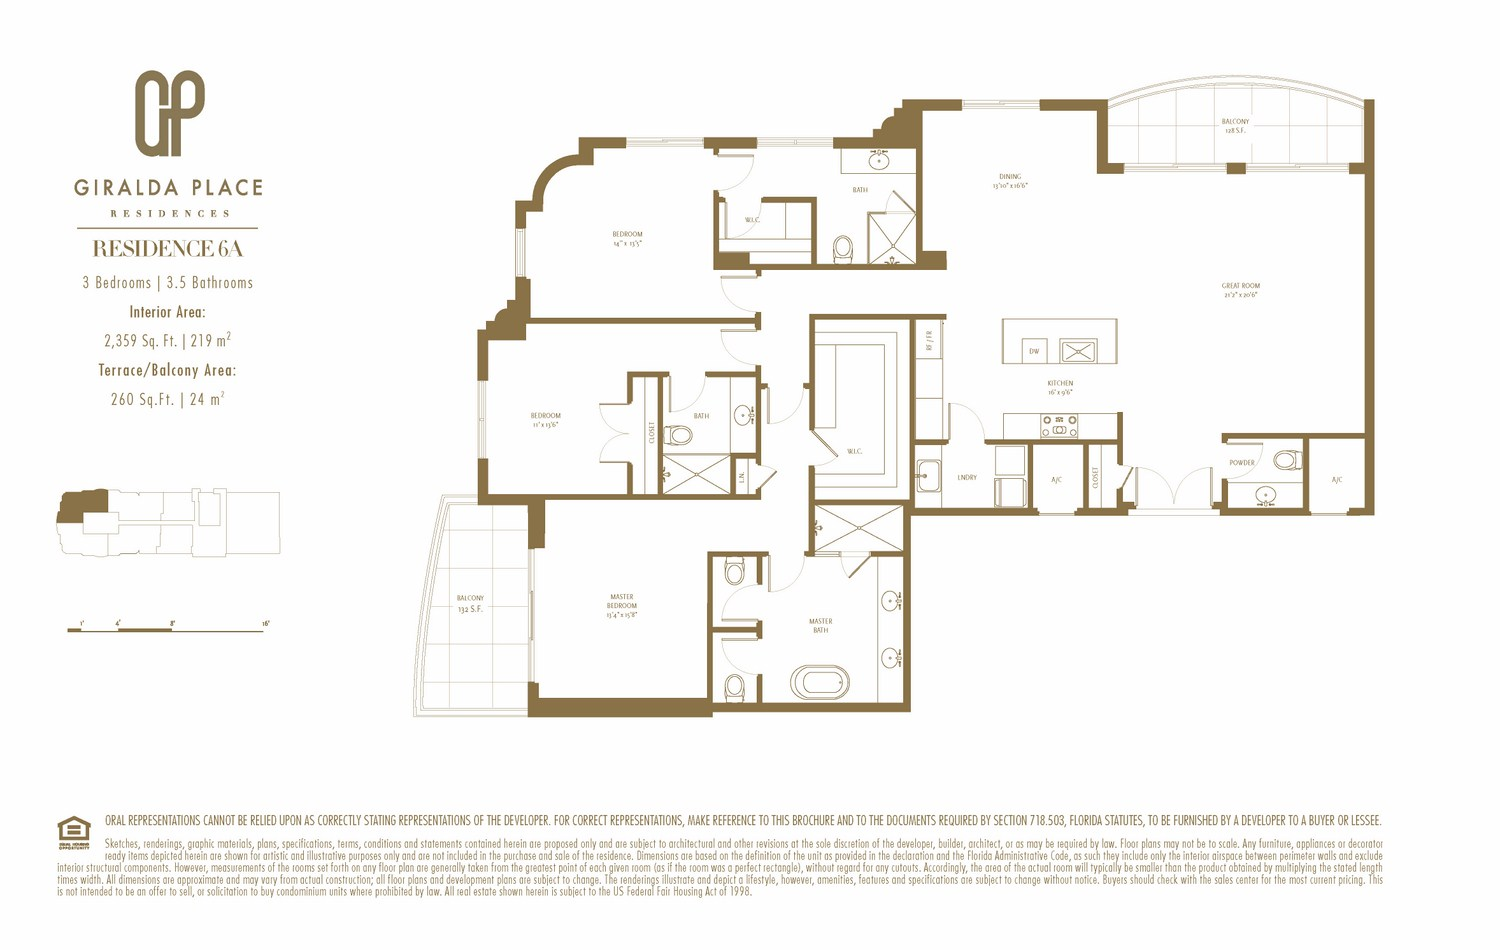 Giralda Place - Floorplan 2